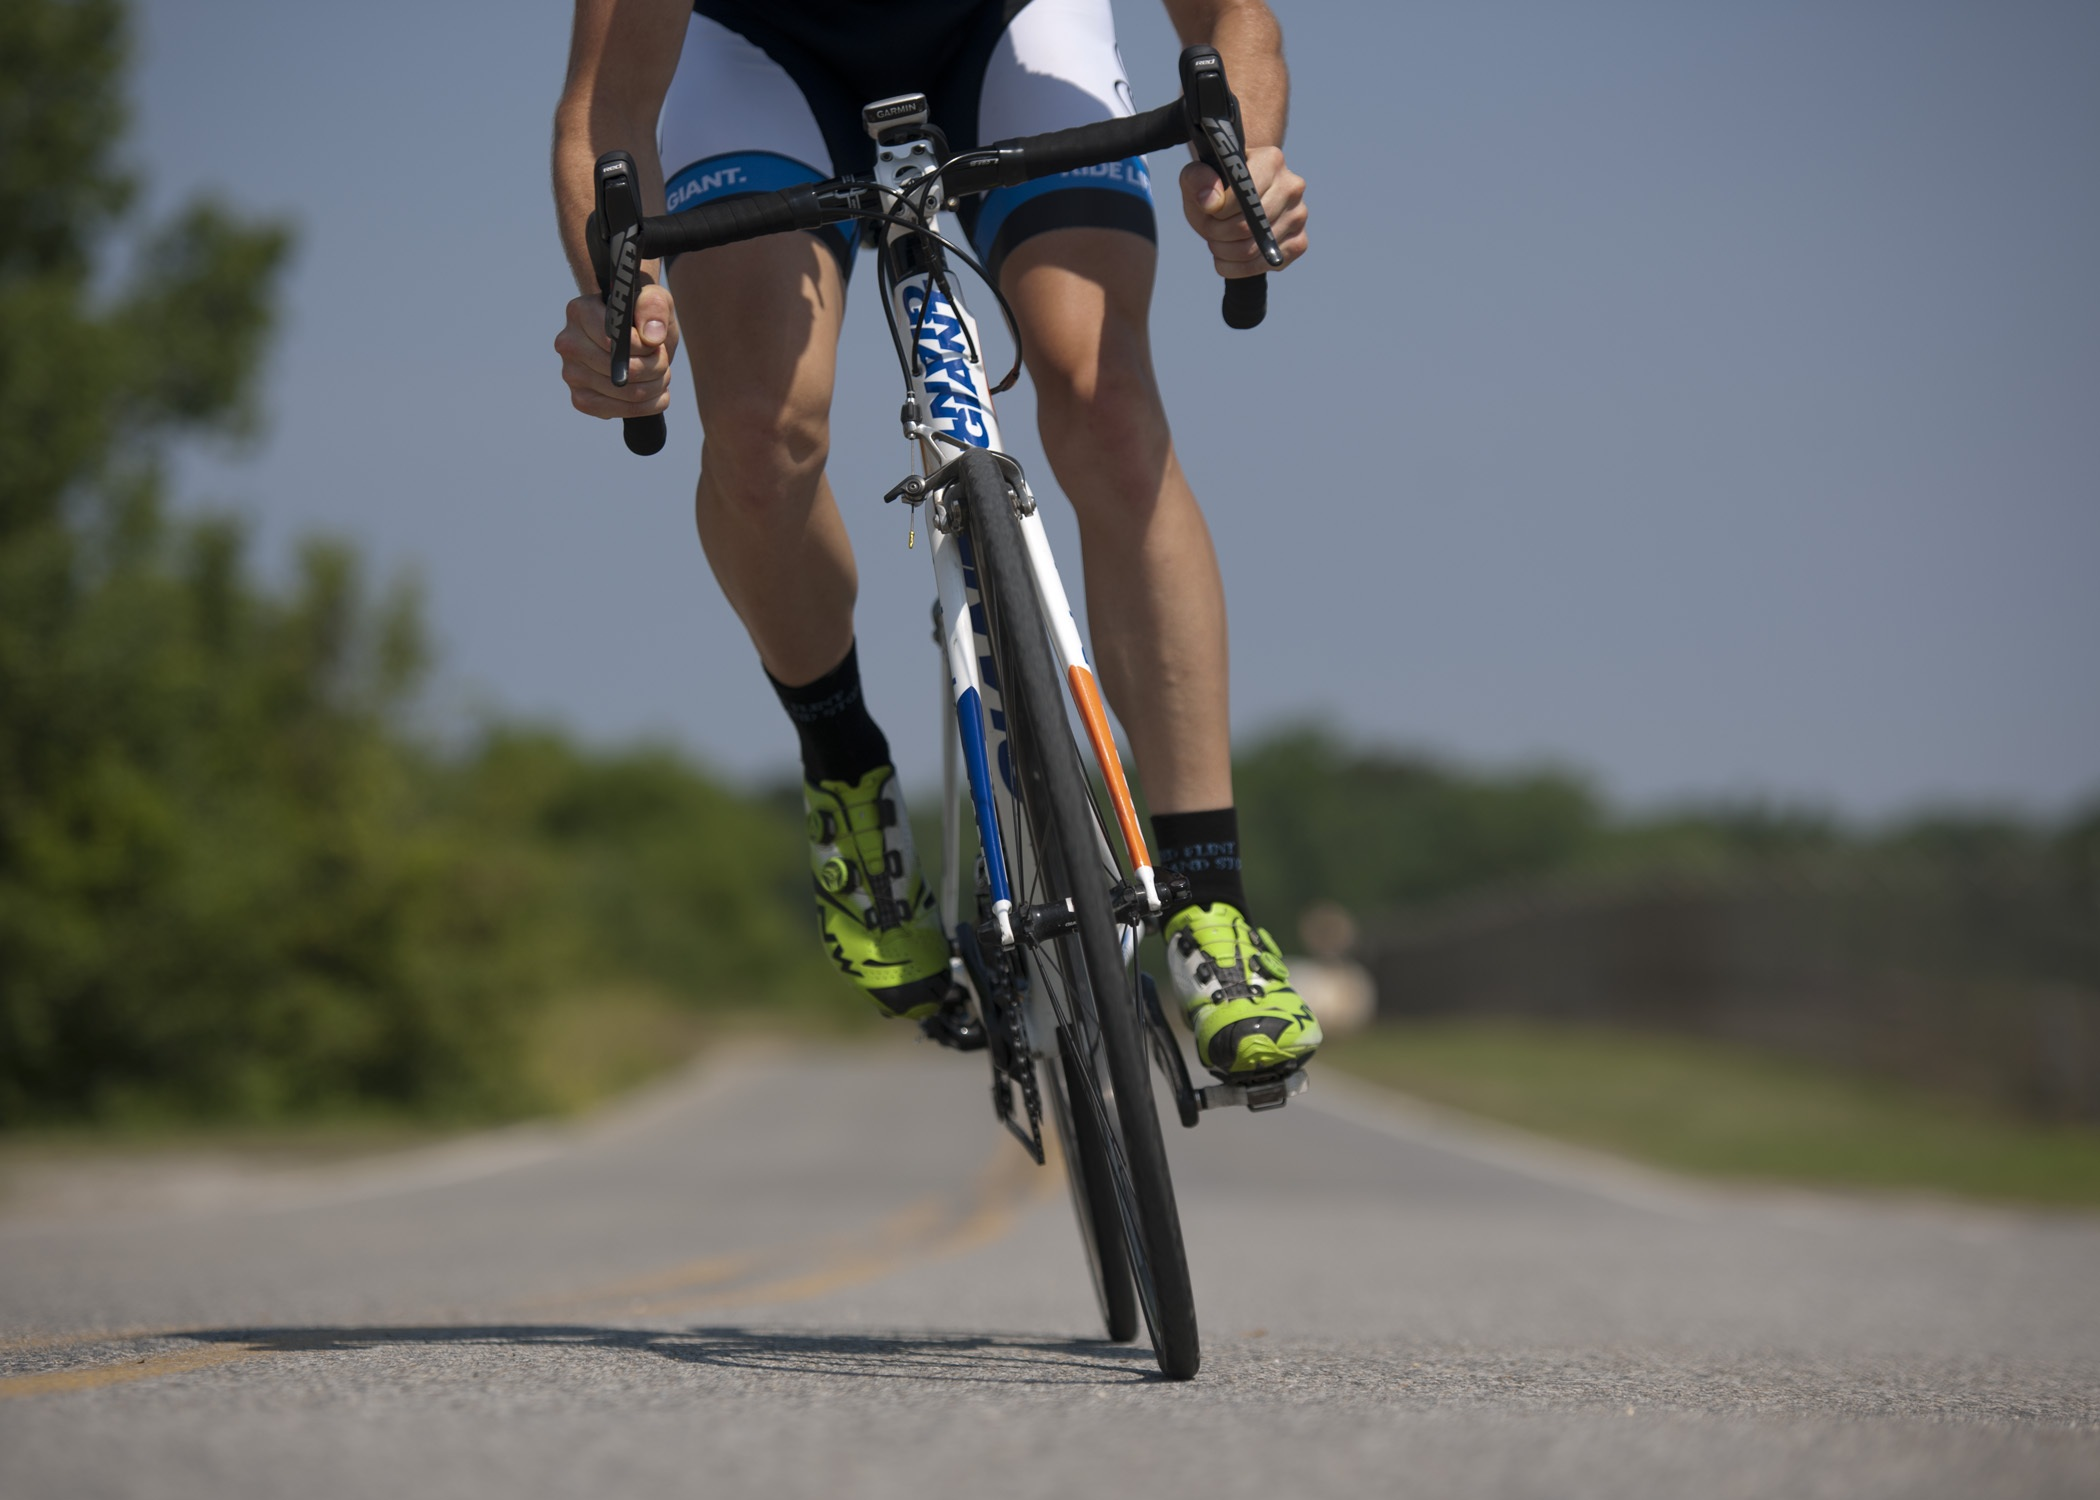 how to cycle downhill safely